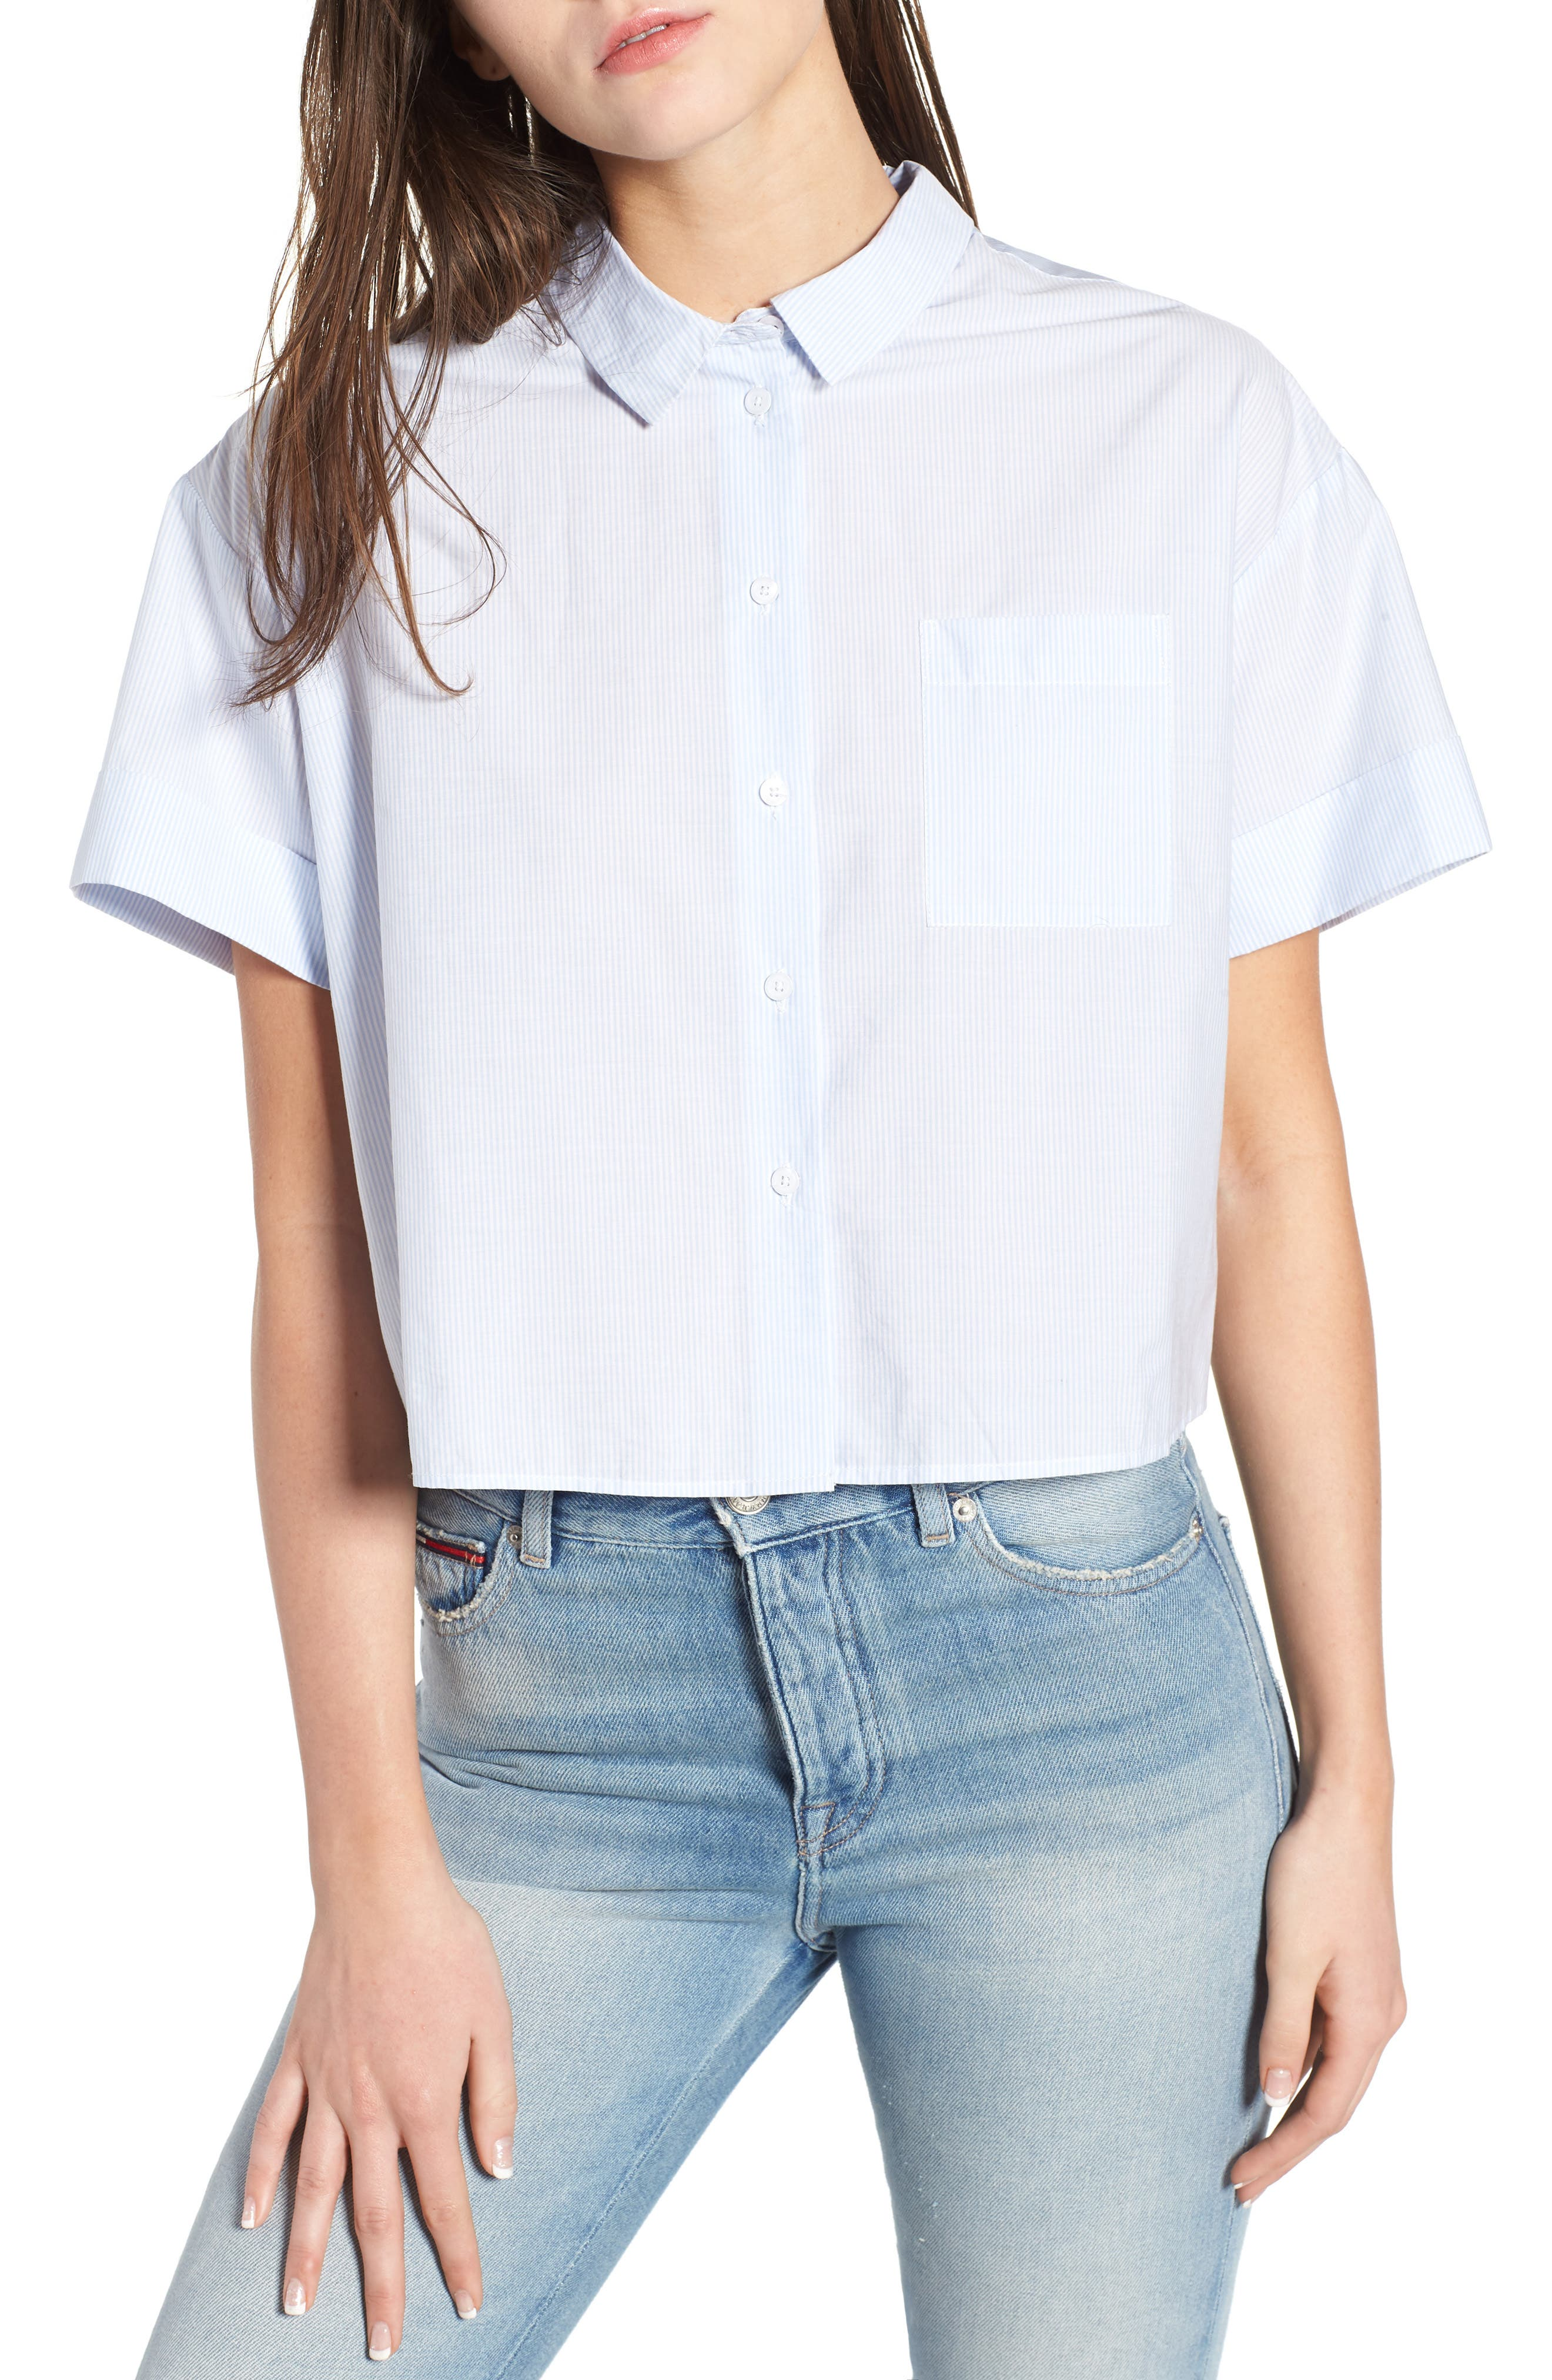 Tie Back Shirt,                         Main,                         color, Serenity / Bright White